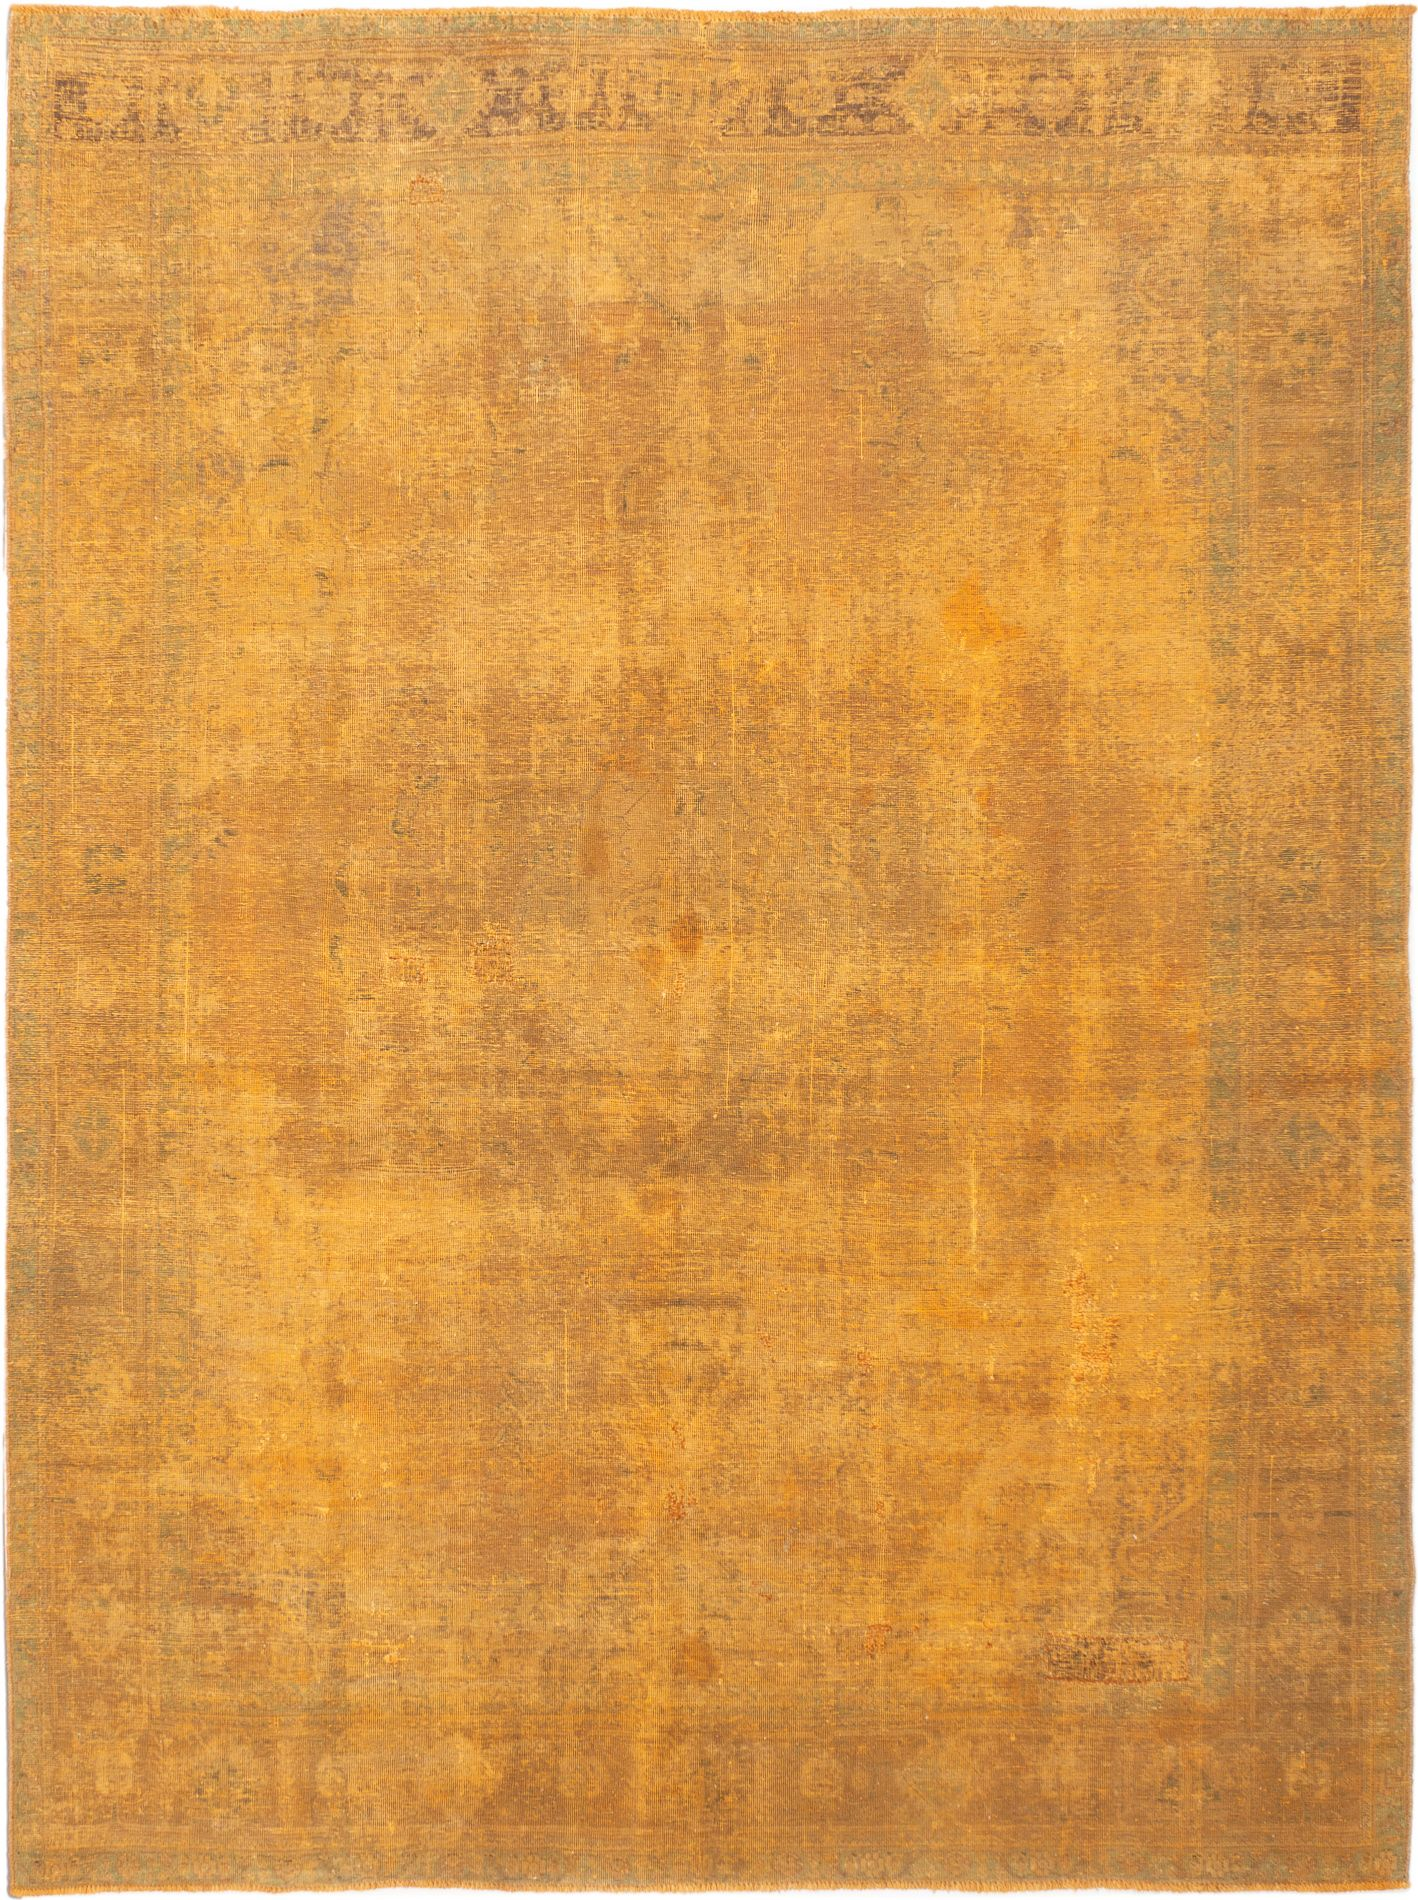 """Hand-knotted Color Transition Light Orange Wool Rug 9'5"""" x 12'6"""" Size: 9'5"""" x 12'6"""""""